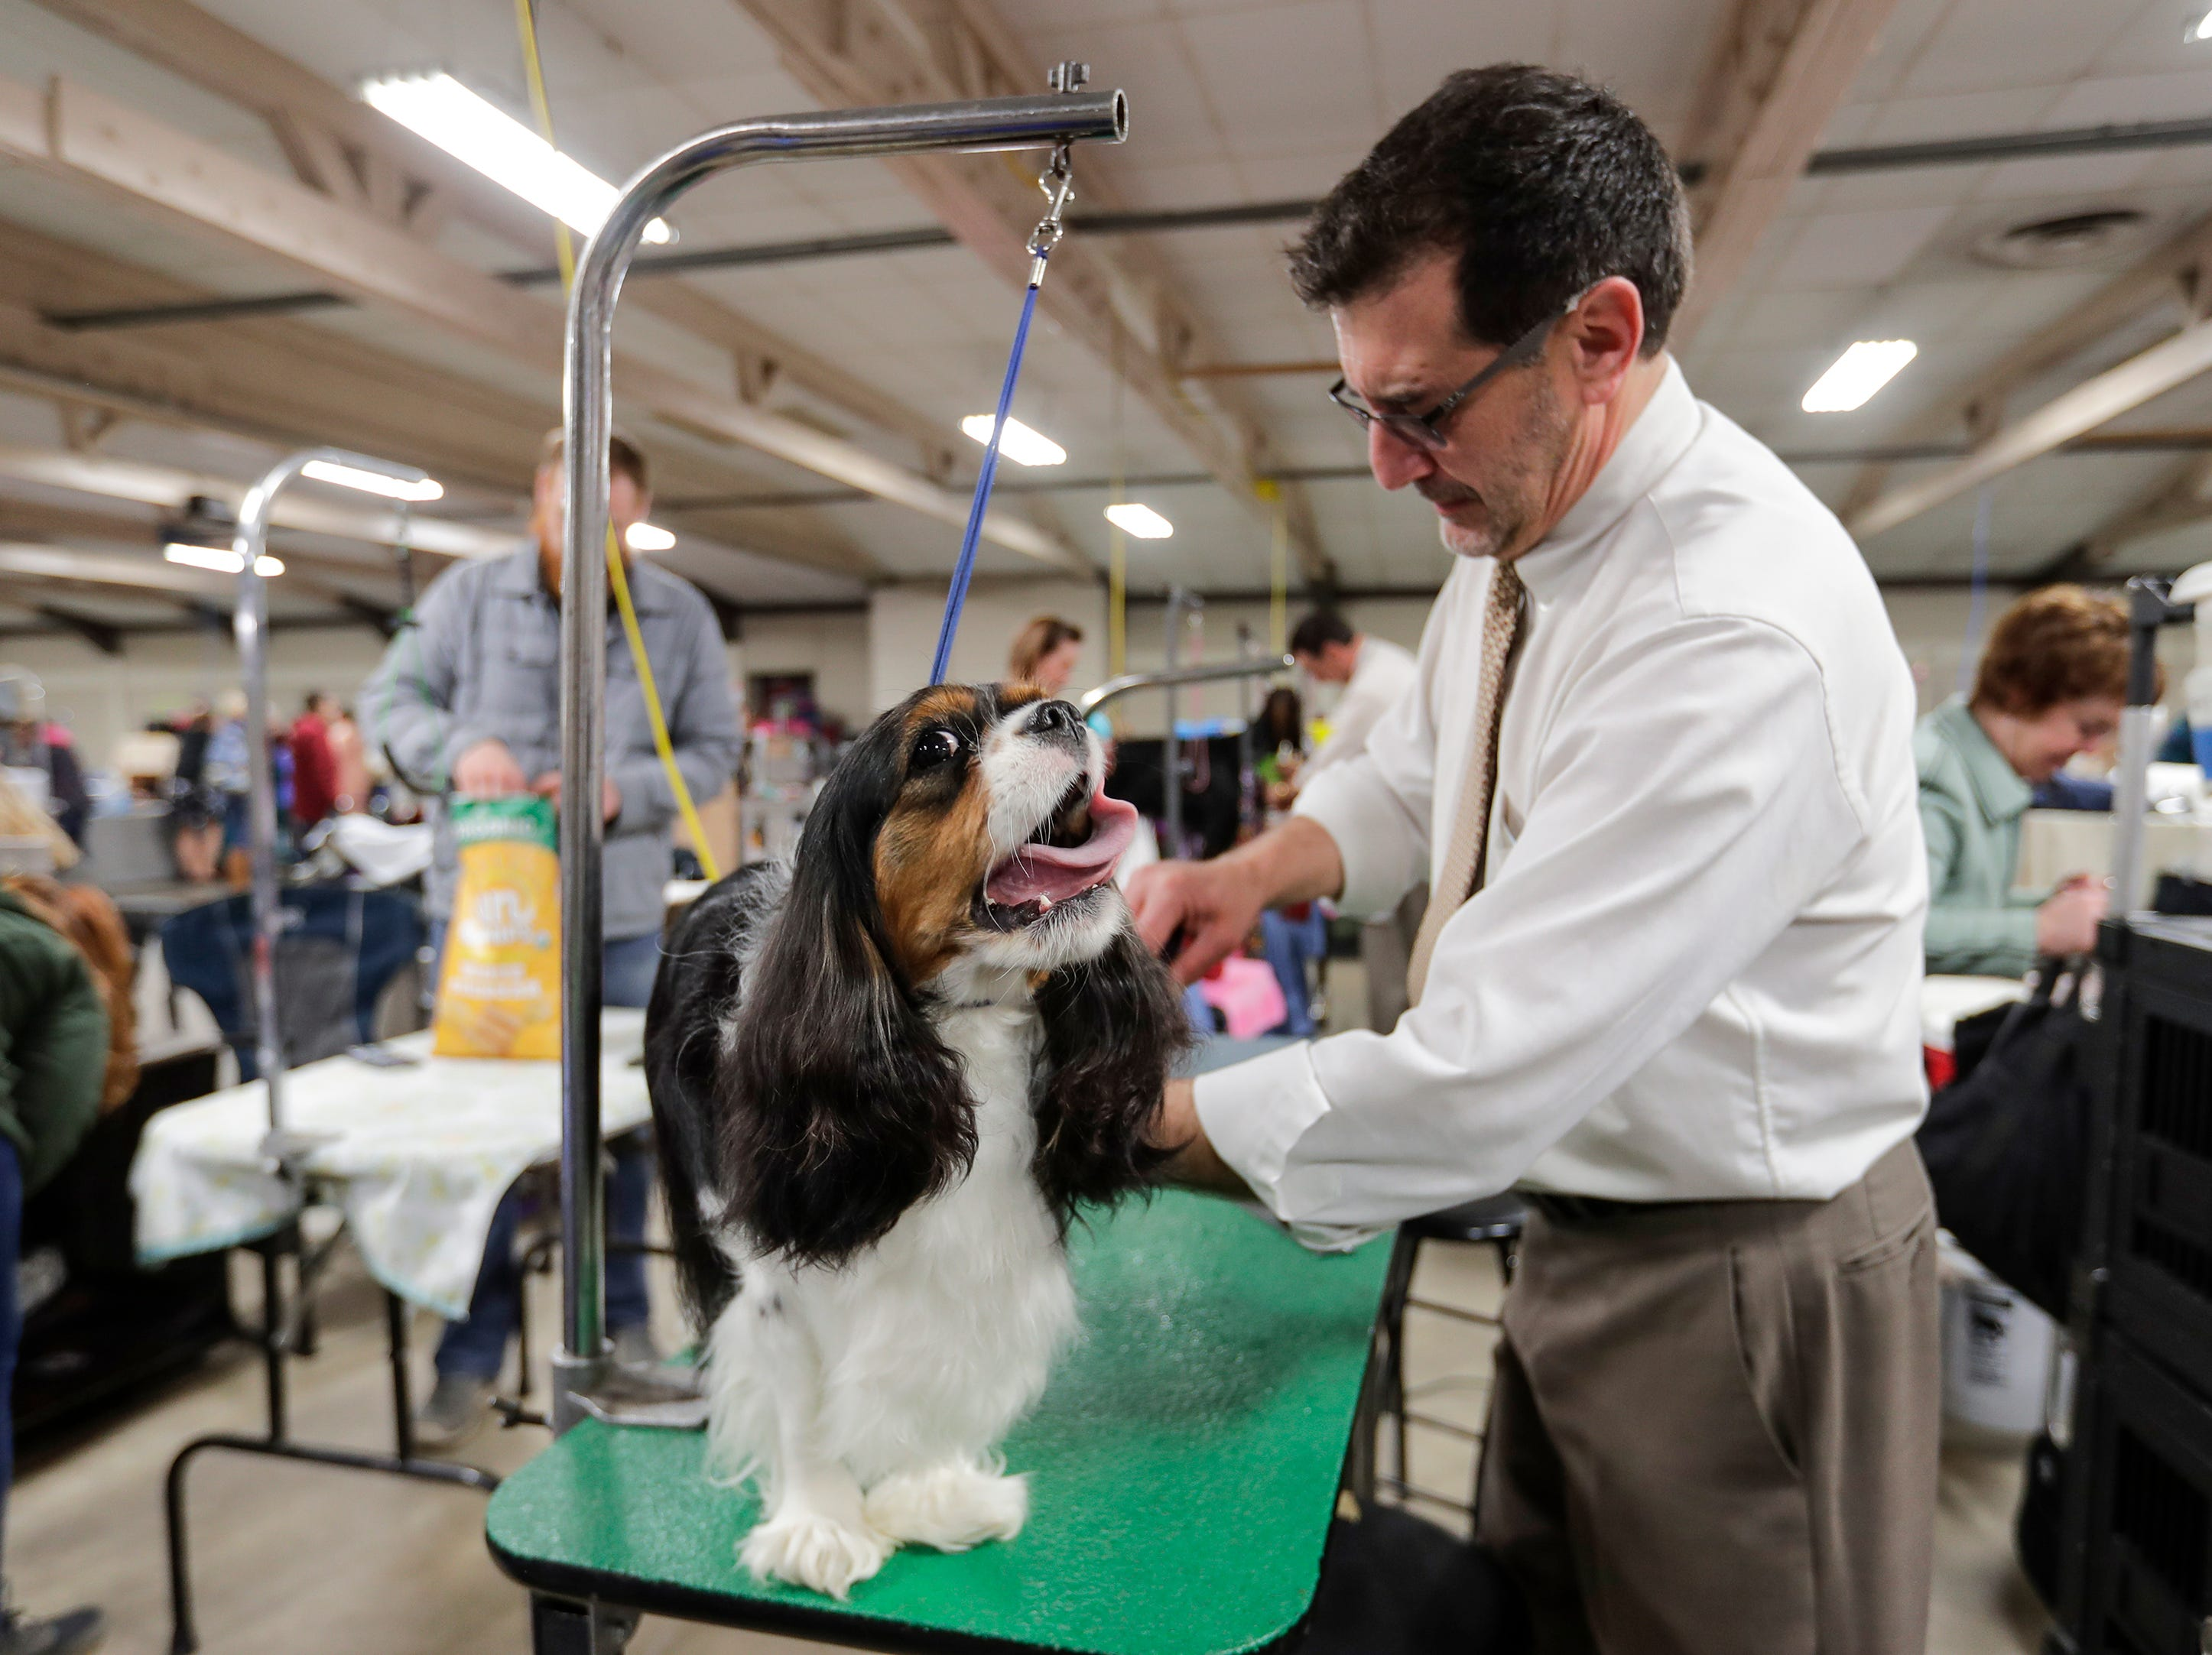 Carlos Puig, of Round Lake, Ill., grooms a cavalier king charles spaniel during the Northeast Wisconsin Dog Show Classic at the Manitowoc County Expo Center Thursday, March 28, 2019, in Manitowoc, Wis. Joshua Clark/USA TODAY NETWORK-Wisconsin